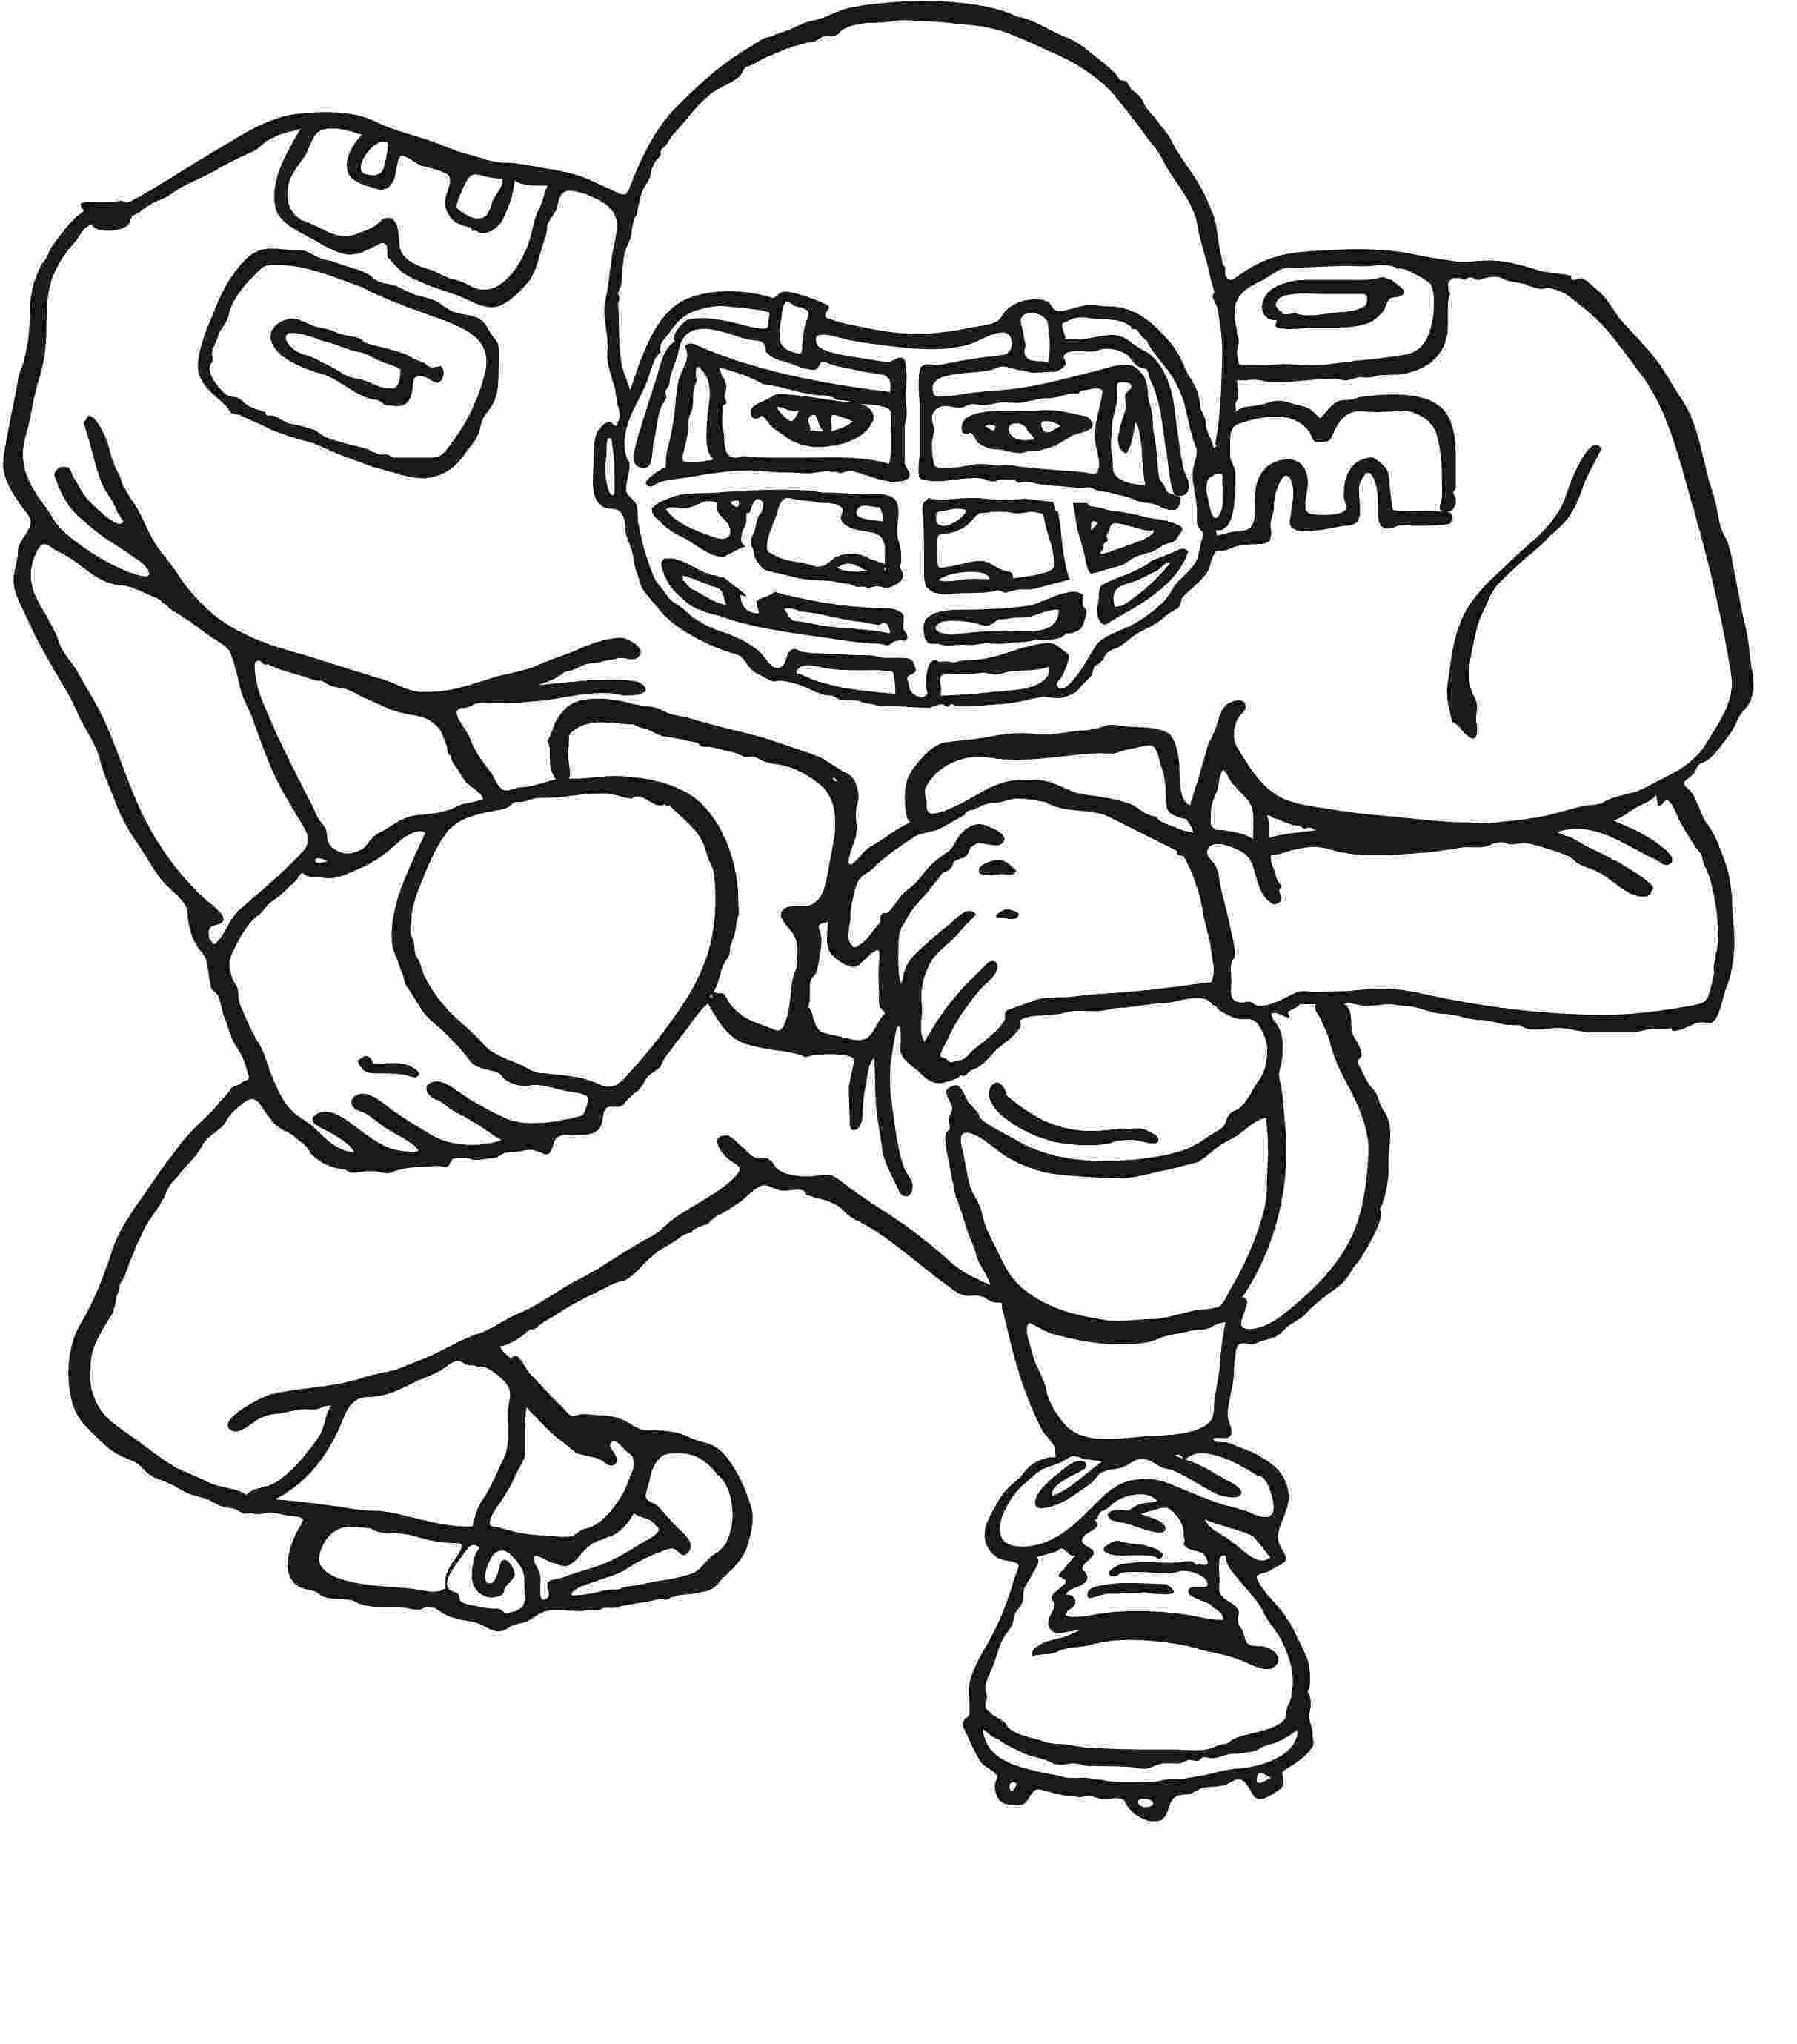 nrl coloring pages nrl cowboys coloring pages 2019 open coloring pages nrl pages coloring